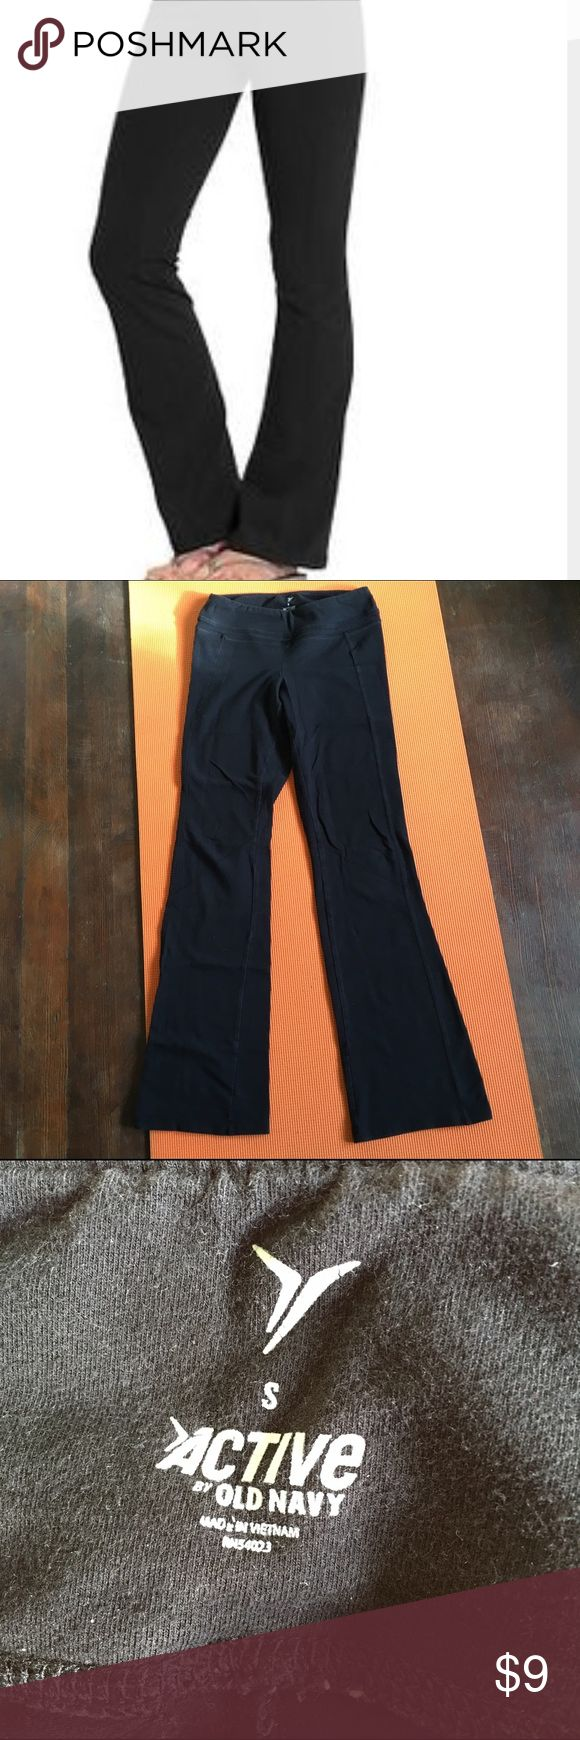 Old Navy Active bootcut pants Soft & comfy bootcut pants for yoga/gym or lounging around. Old Navy Pants Boot Cut & Flare